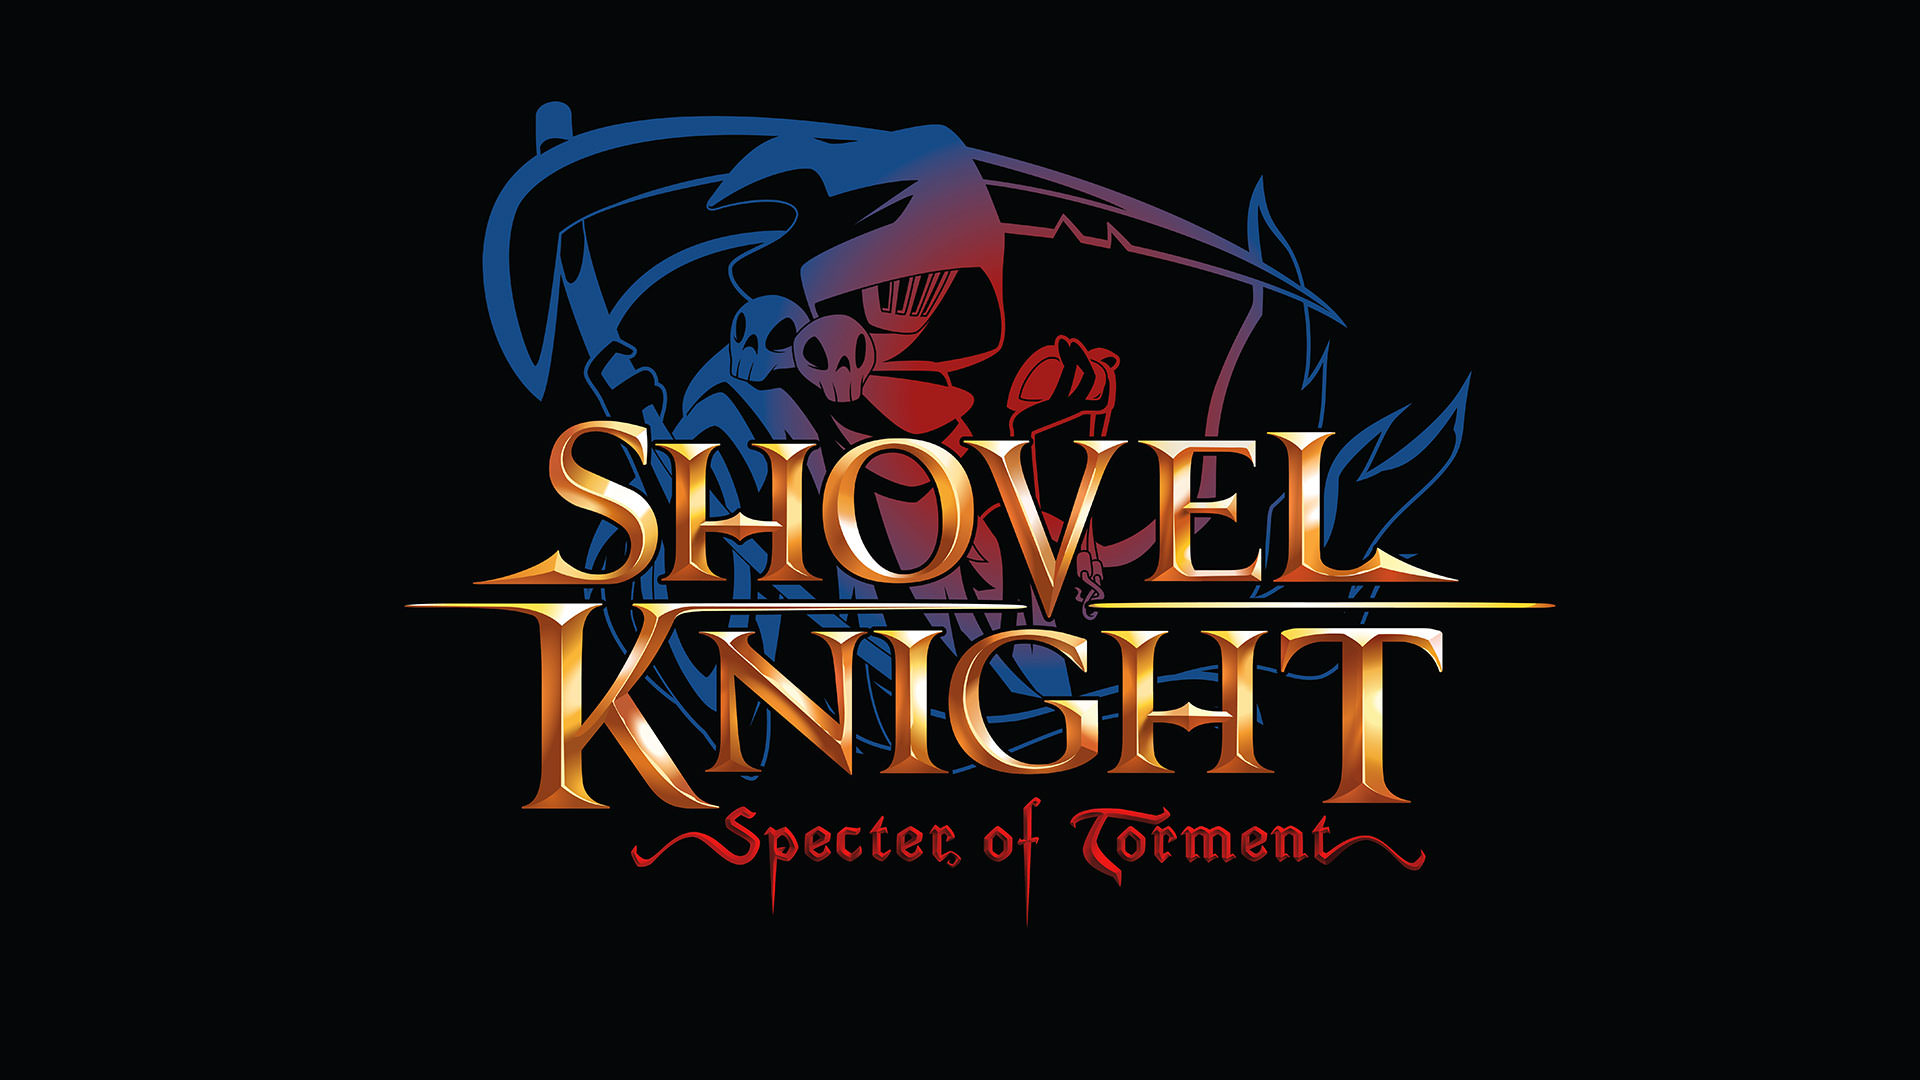 بررسی بازی Shovel Knight: Specter of Torment